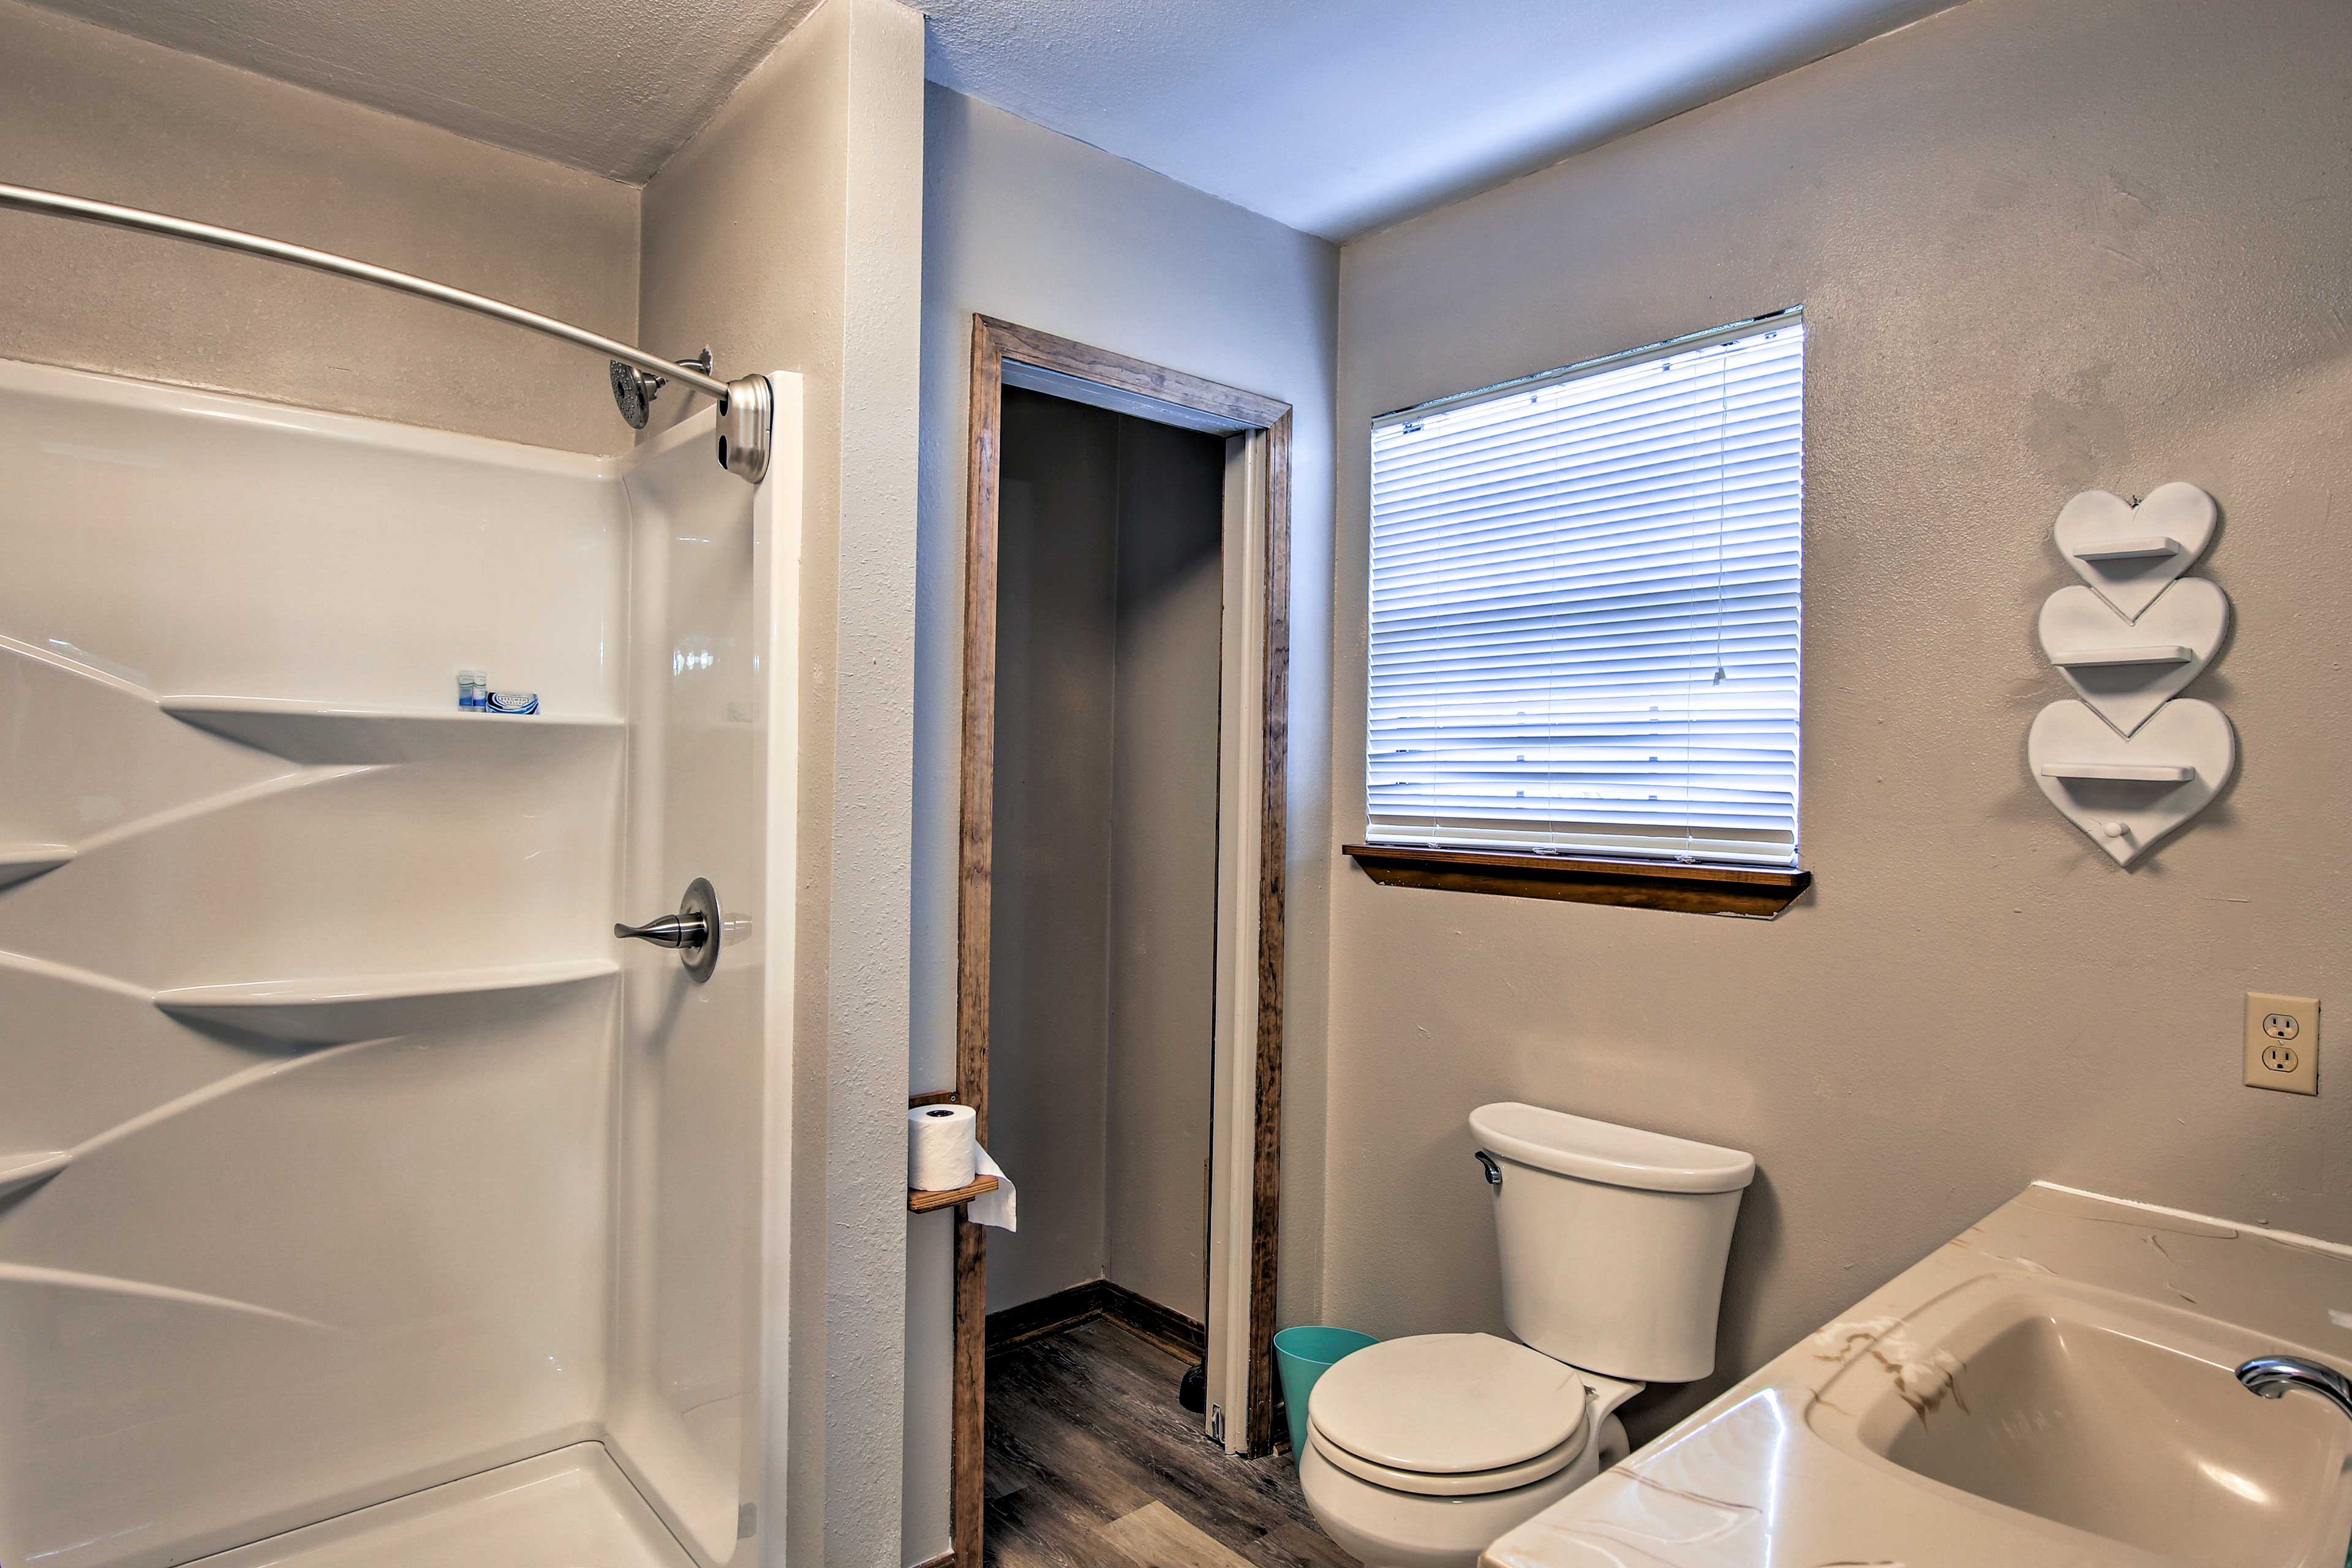 The master bathroom has a spacious walk-in shower.